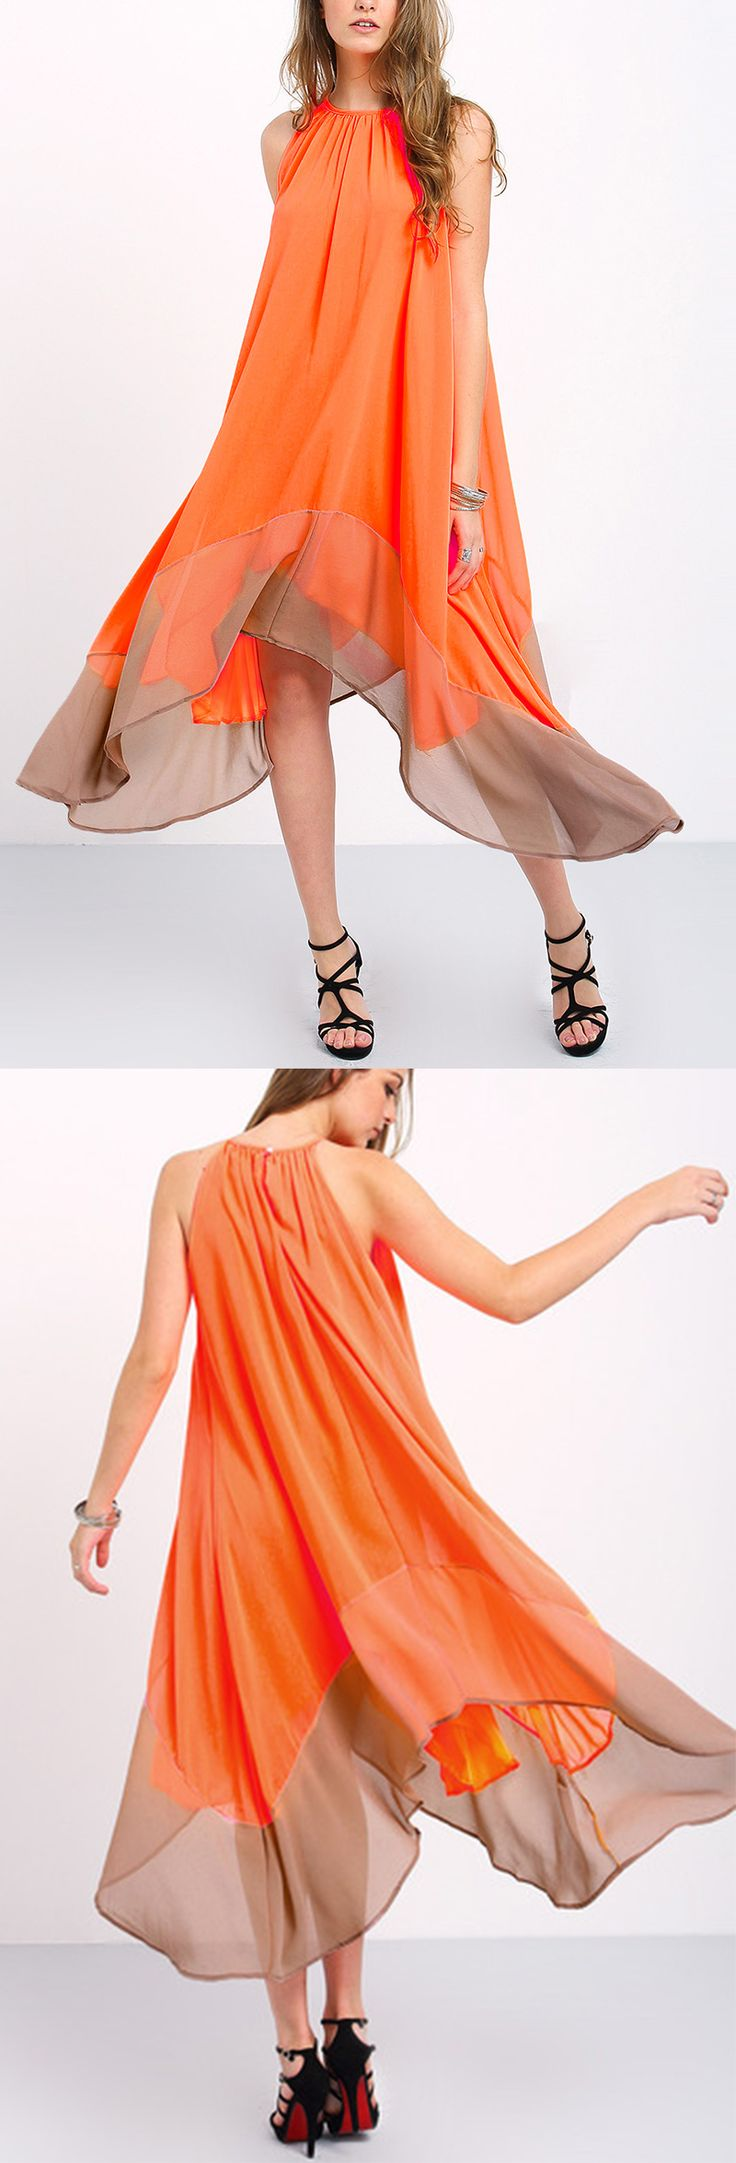 Sweet orange floral dress for summer. Maxi beach style with tent shift Silhouette, special ink color-block give a fluid beauty. Colour-block Loose Tent Dress by shein